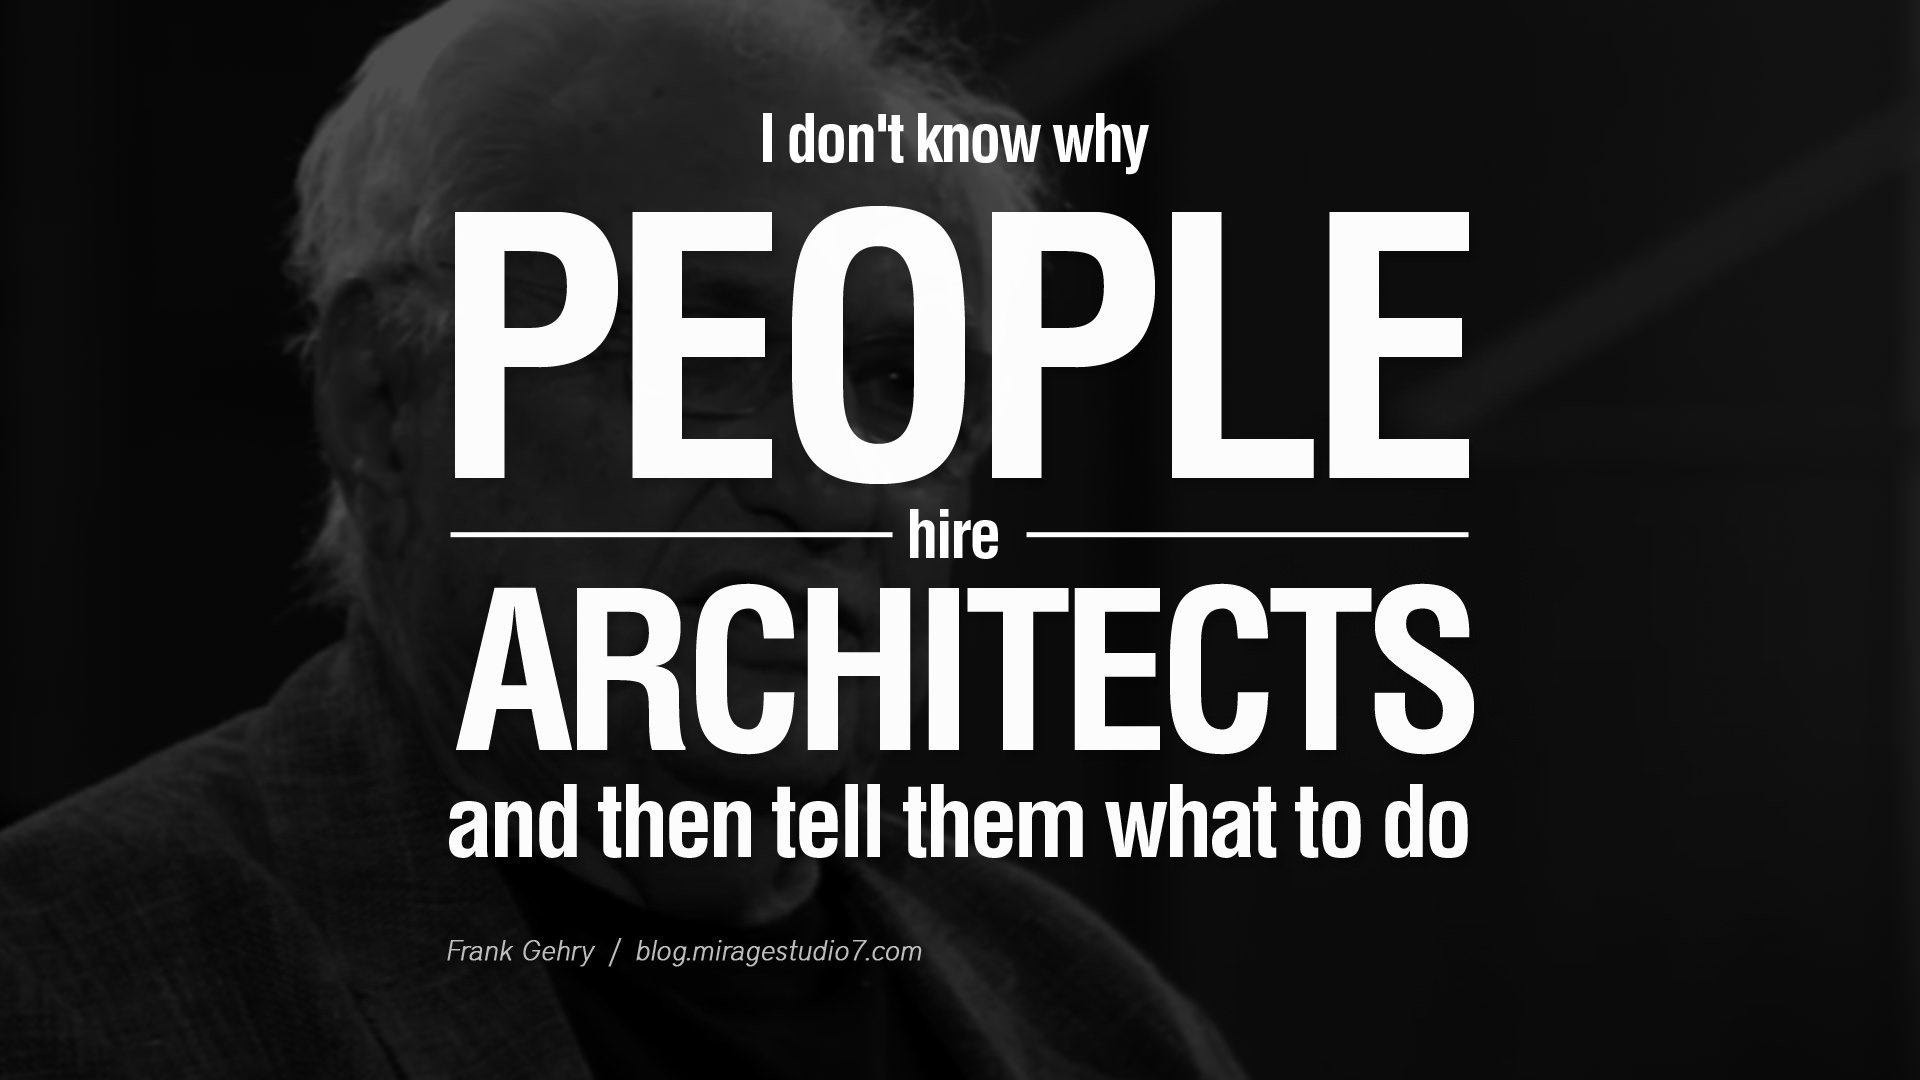 architecture quotes architect quote famous funny hiring costanza george sayings hadid zaha exceeding quotesgram goals julia morgan legacy speak buildings